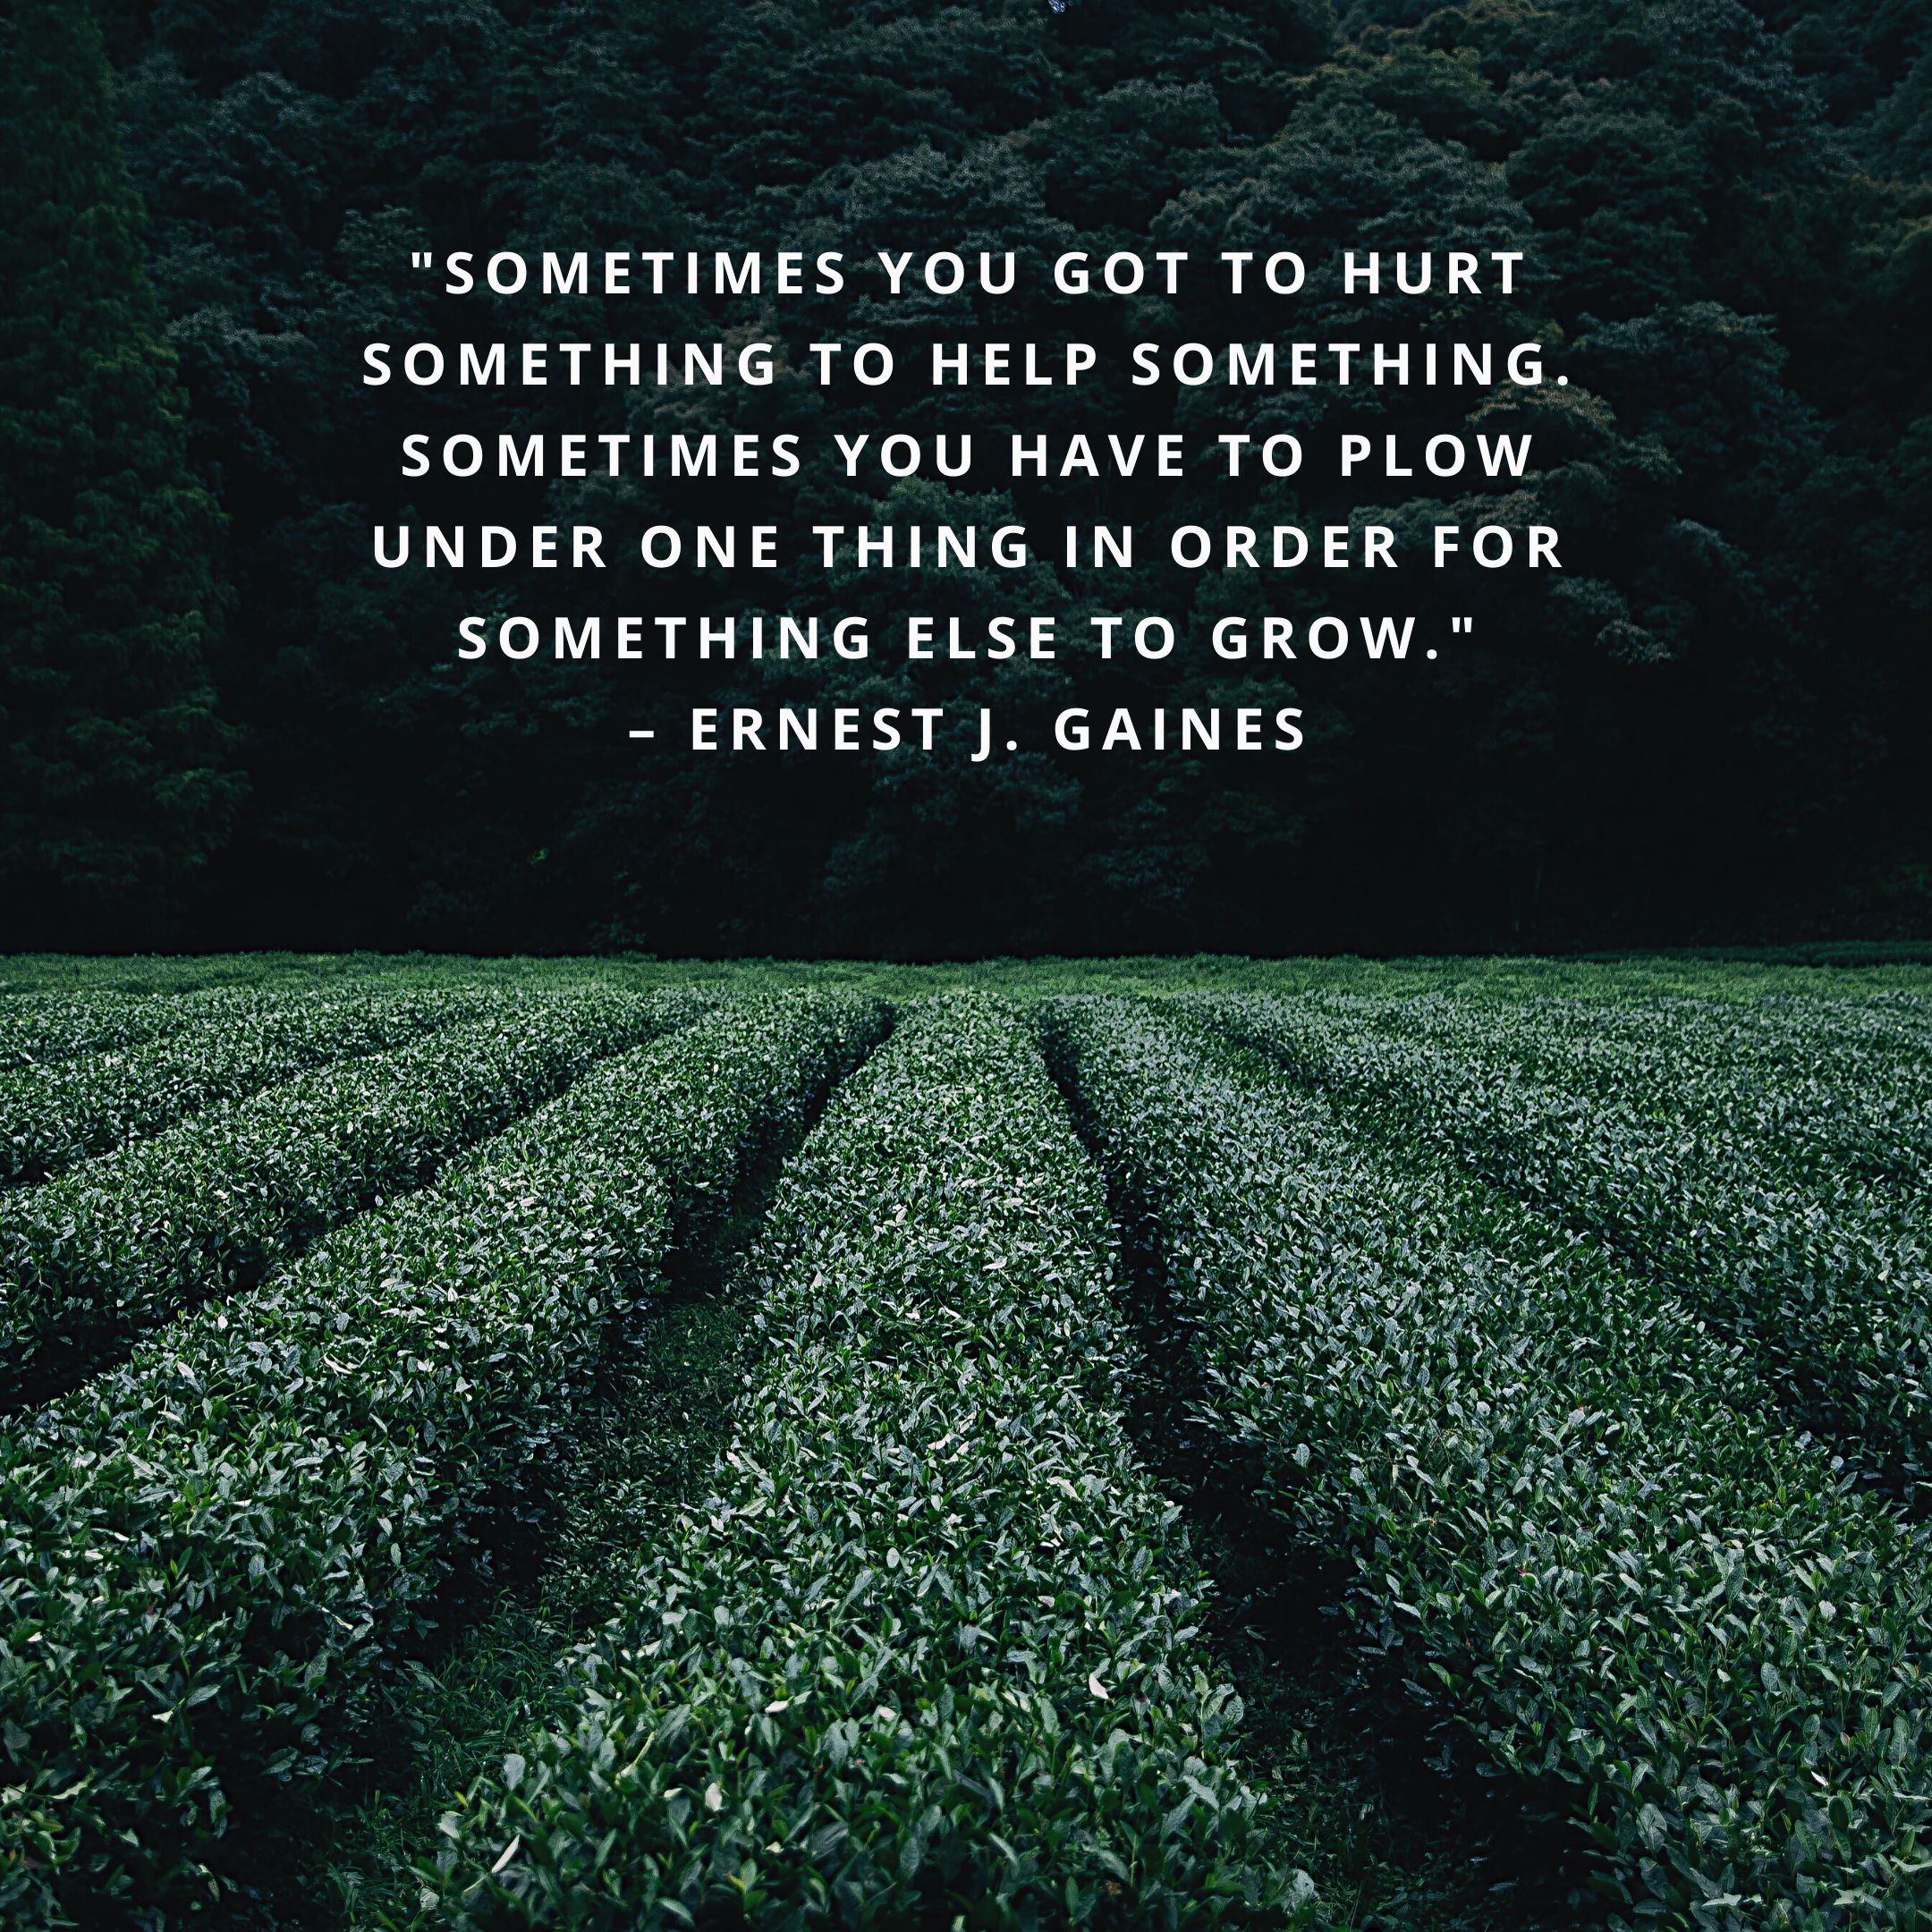 """""""Sometimes you got to hurt something to help something. Sometimes you have to plow under one thing in order for something else to grow."""" –Ernest J. Gaines"""